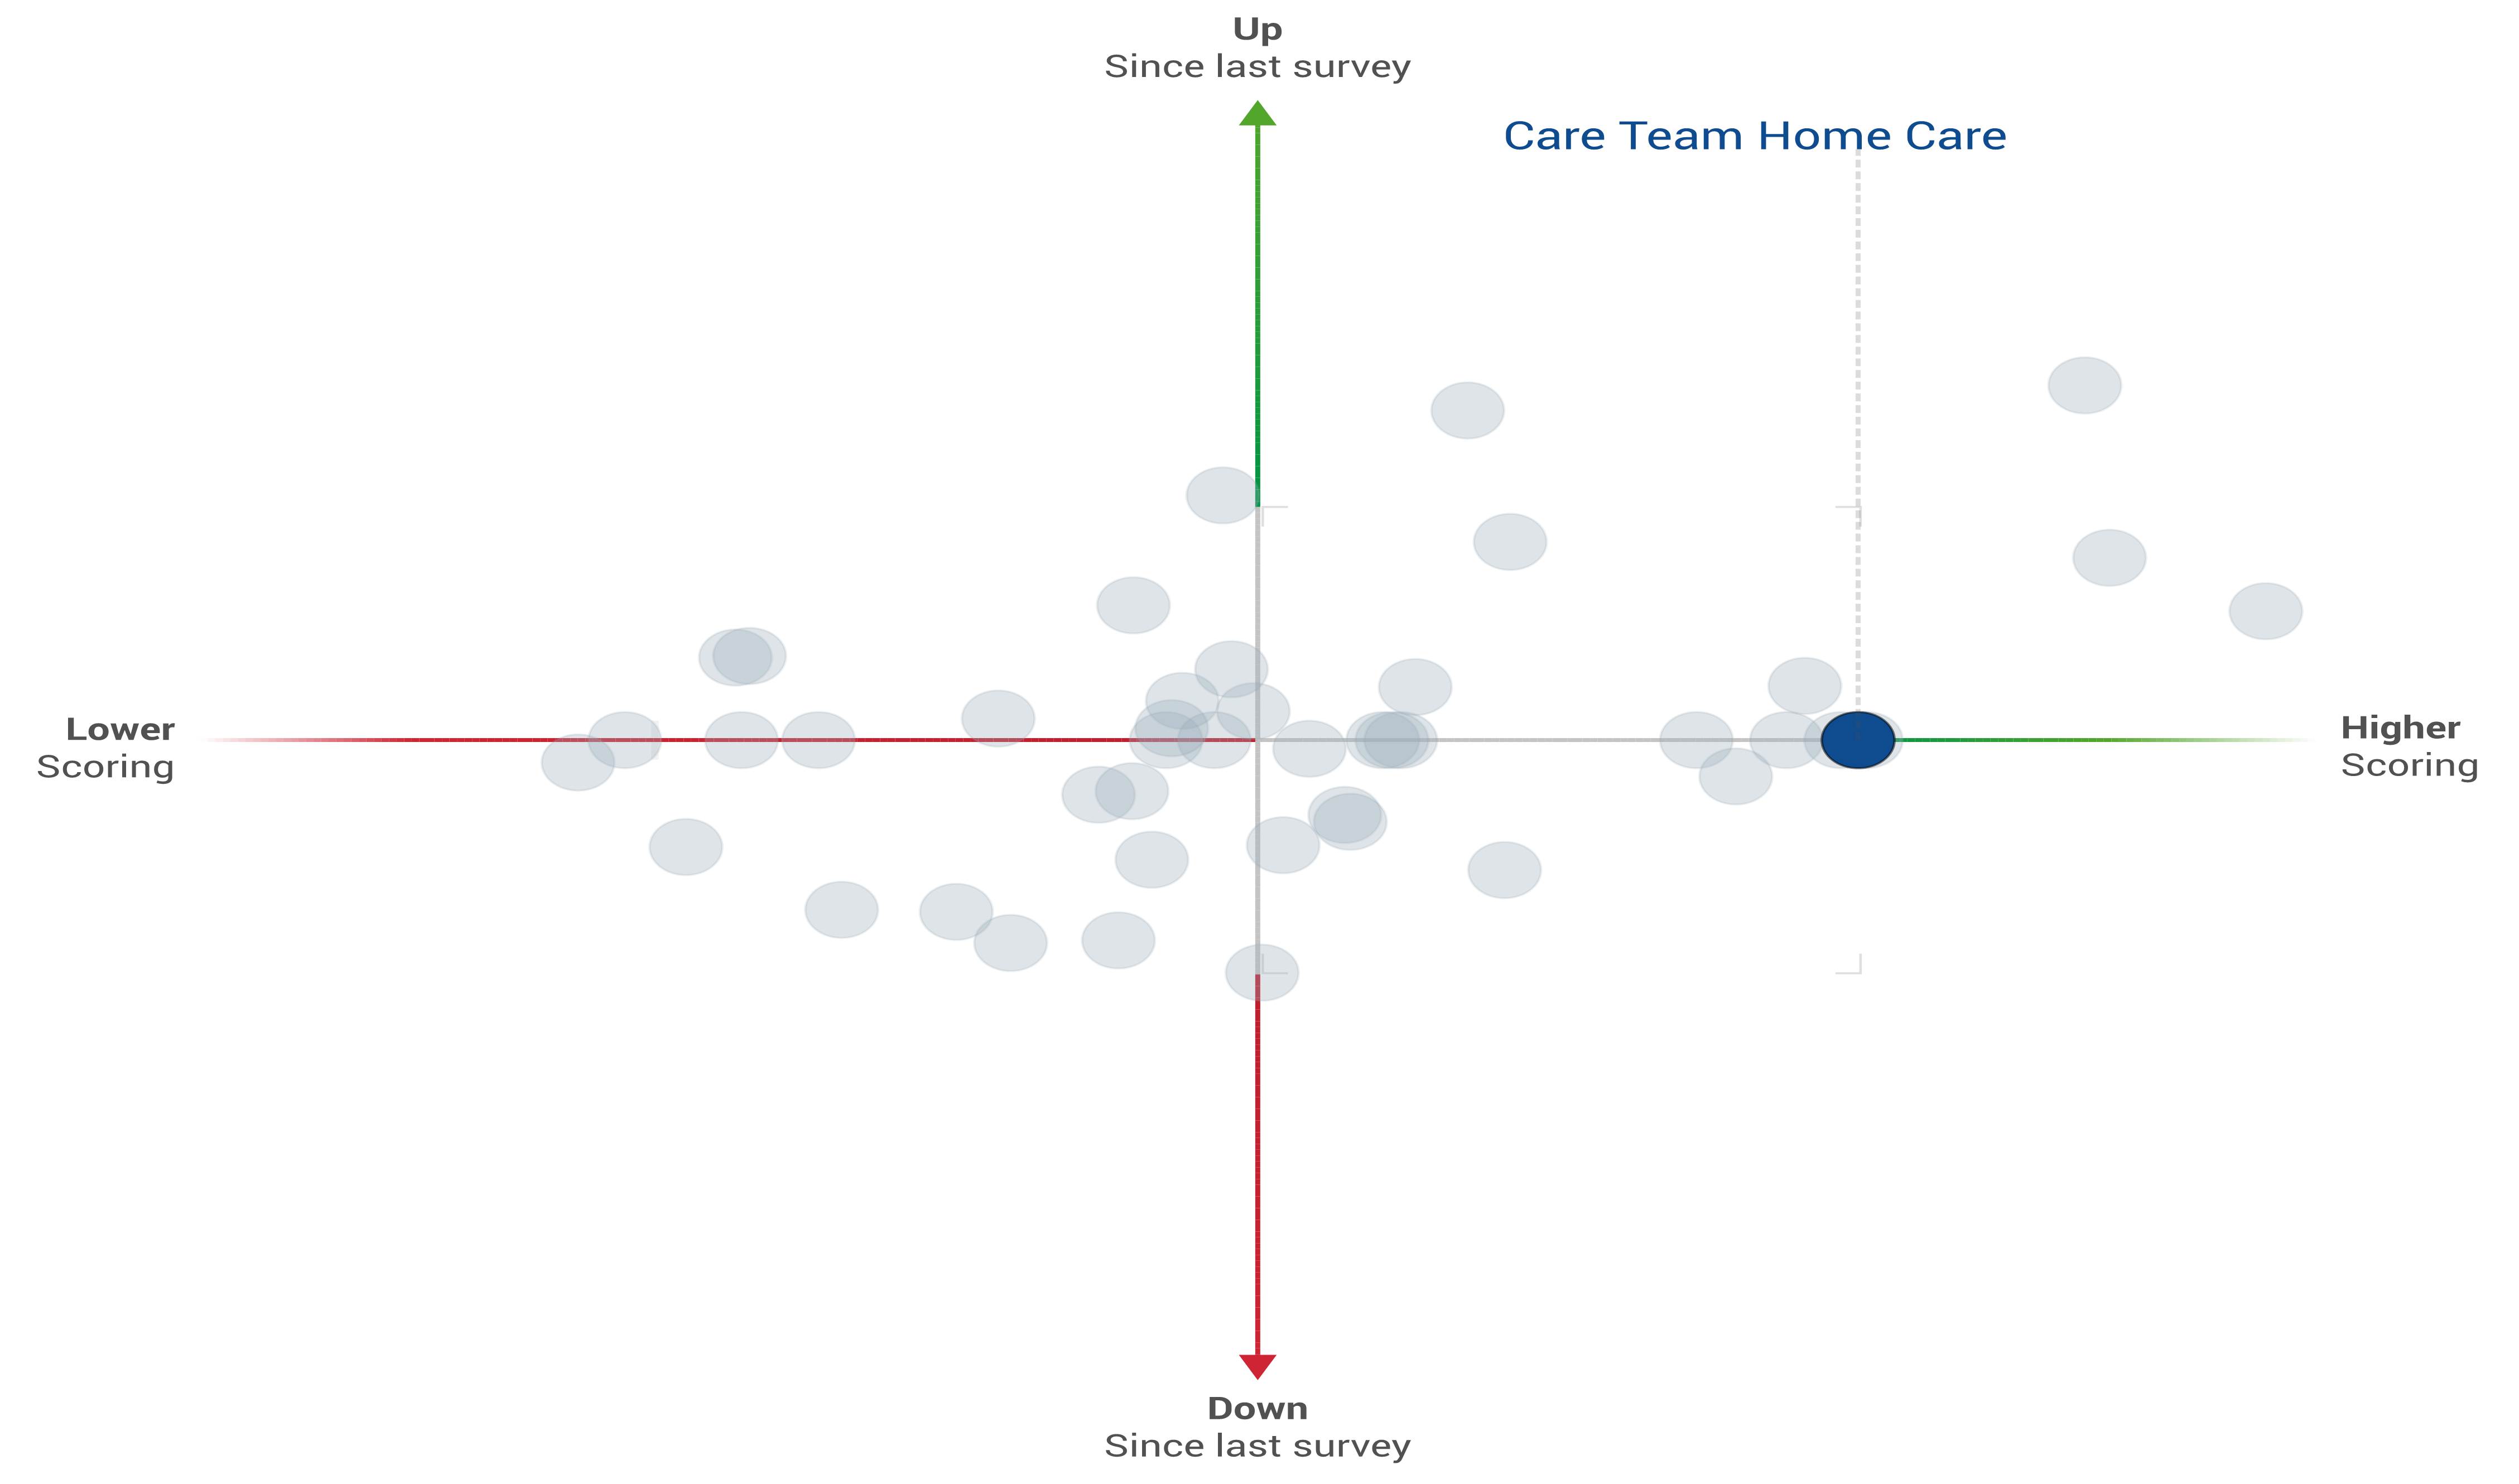 graph showing care team scores above most heathcare companies